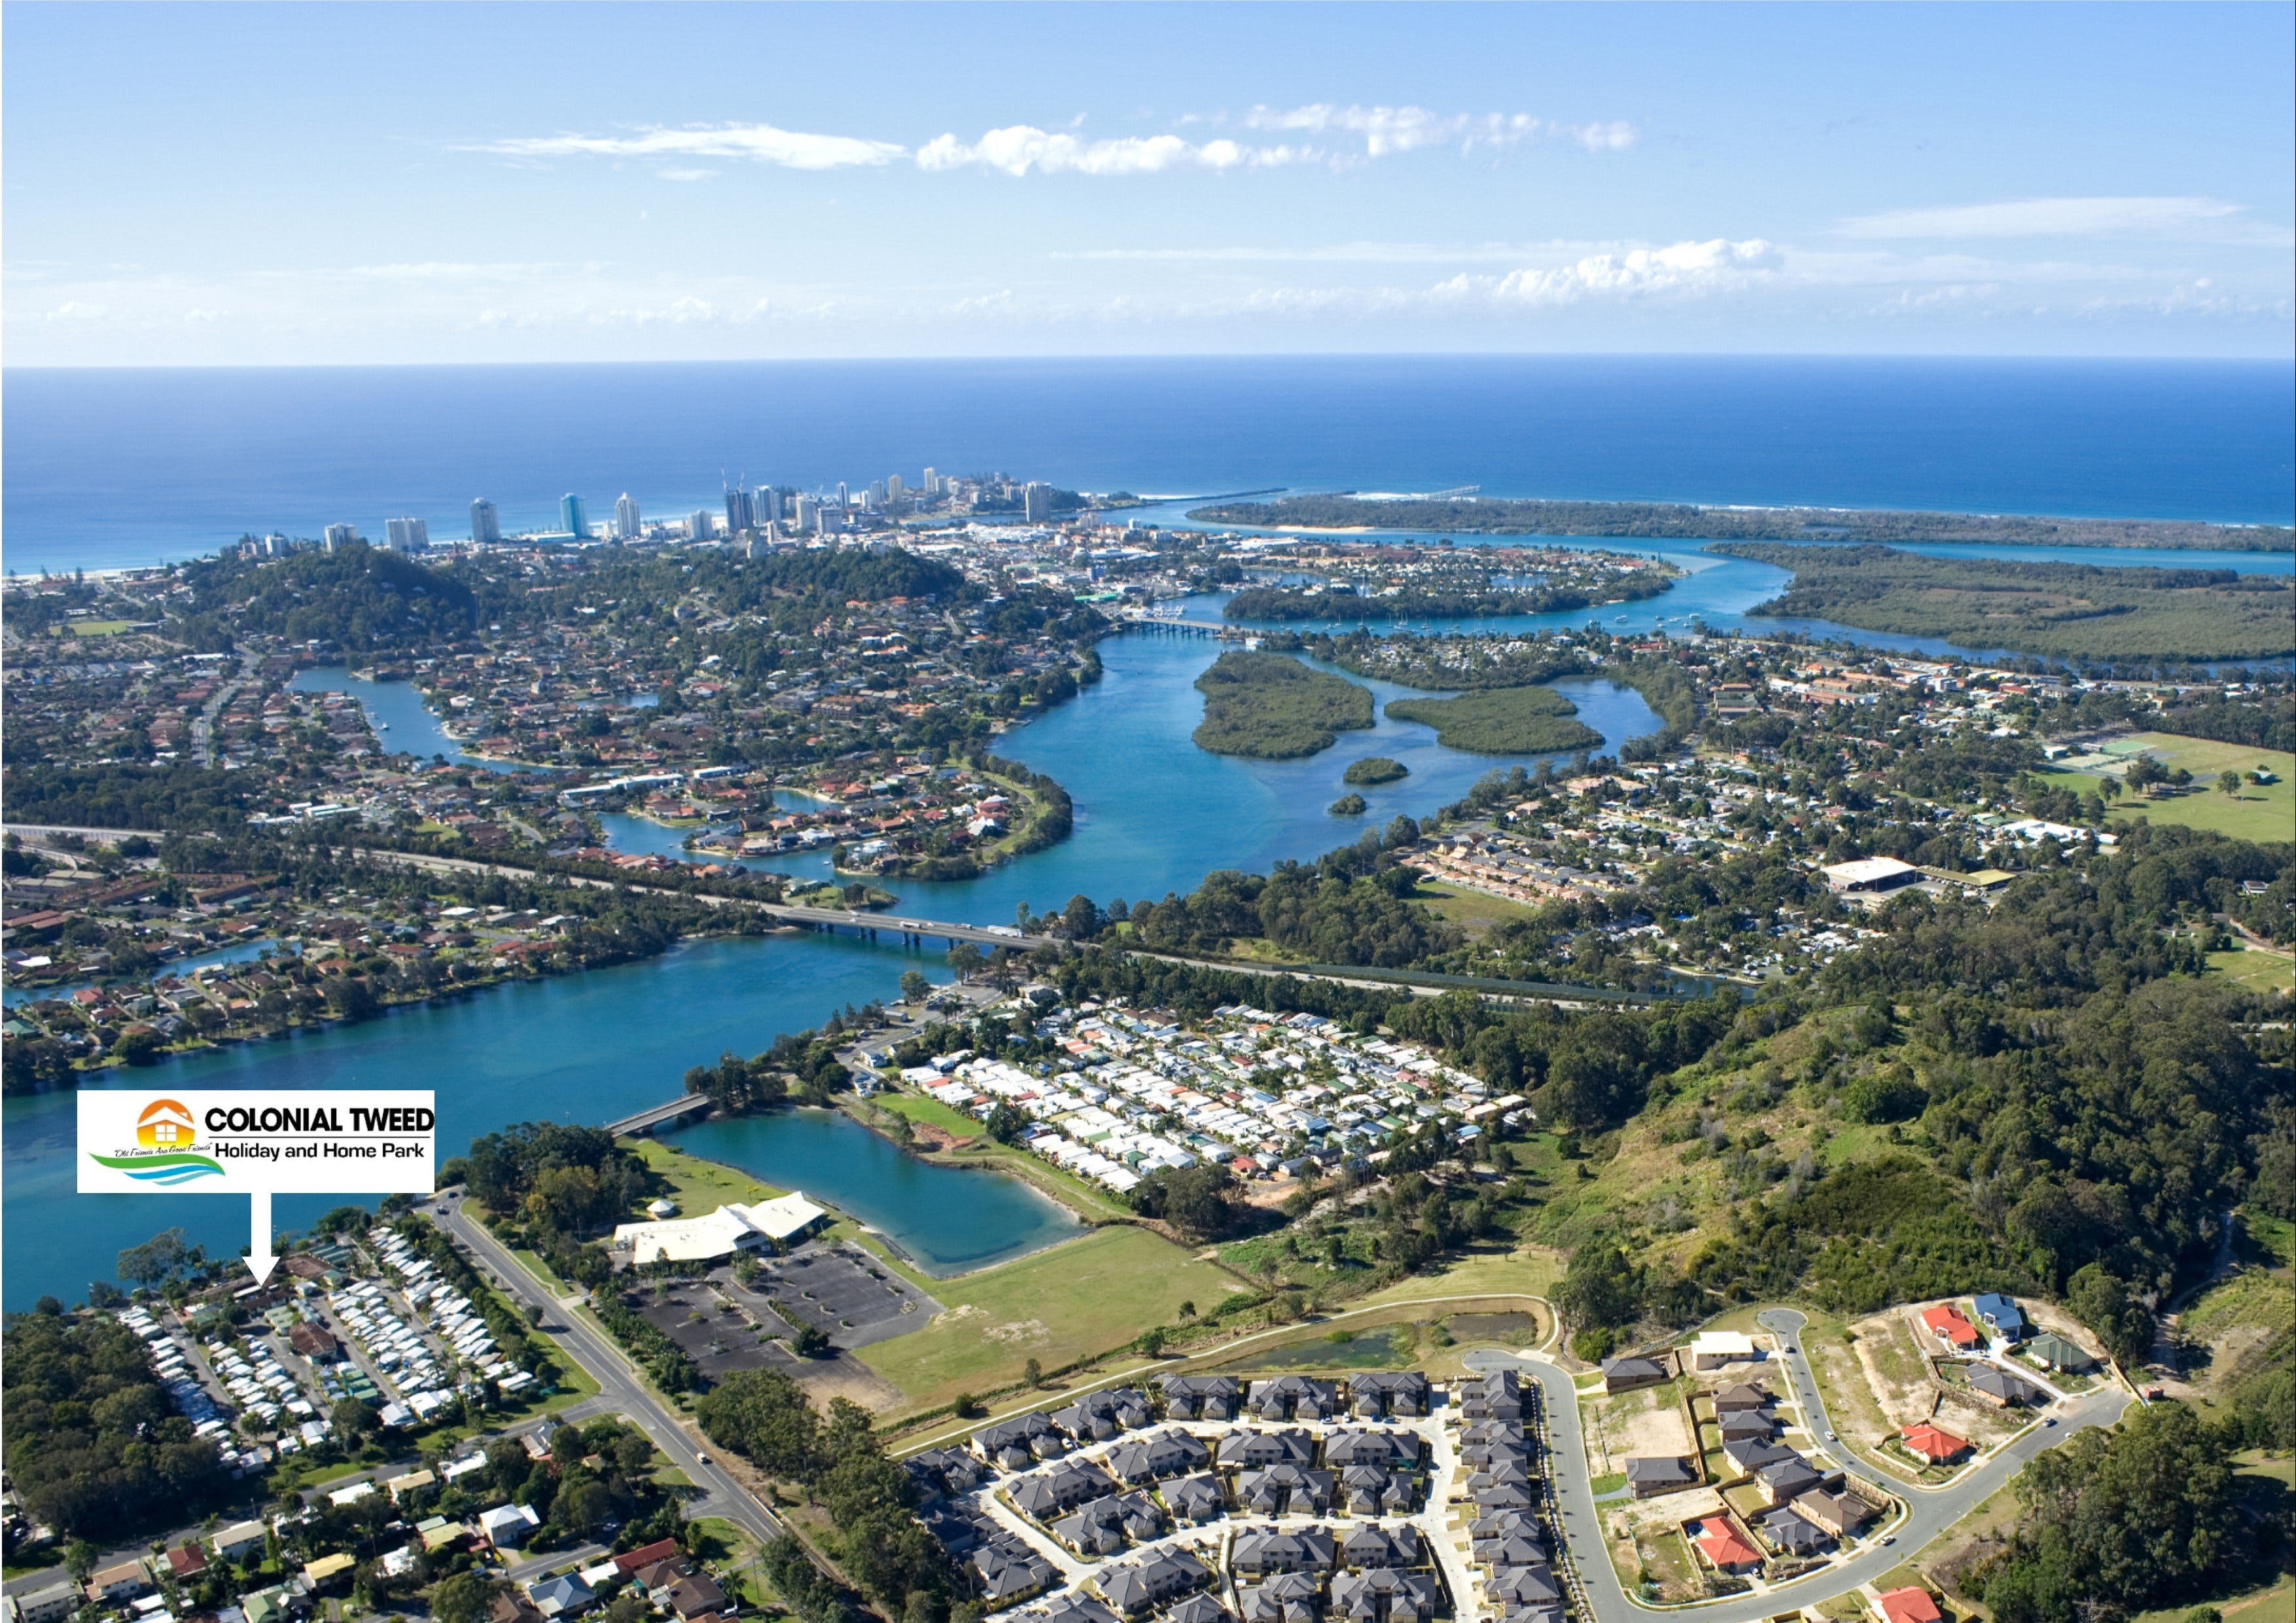 Colonial Tweed Holiday and Home Park - Accommodation in Surfers Paradise